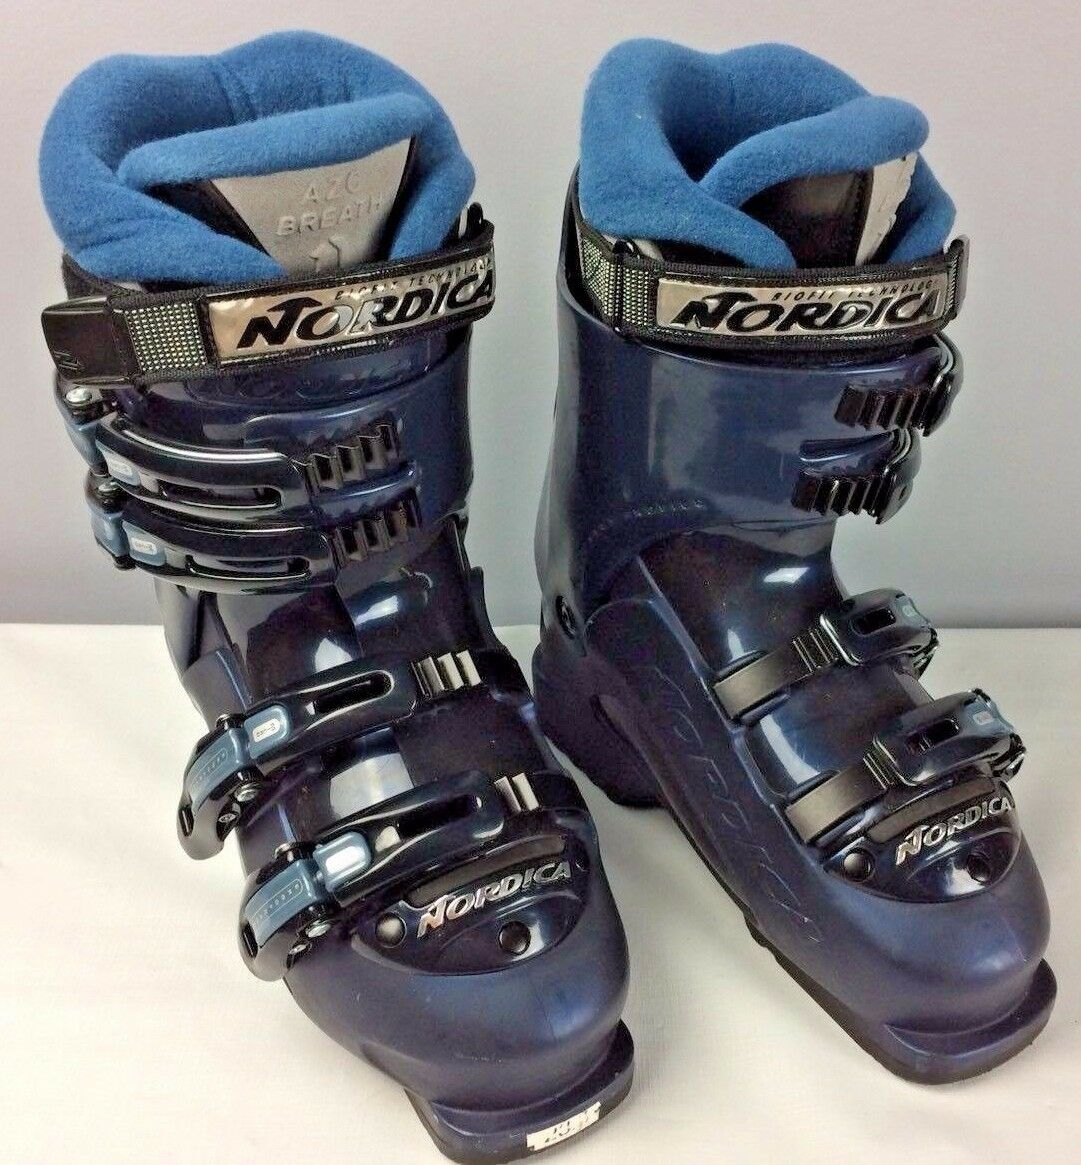 Nordica Trend 07 Exopower Downhill Ski  Boots US Women's 5.5  7.5 Mondo 225 245  fashion brands